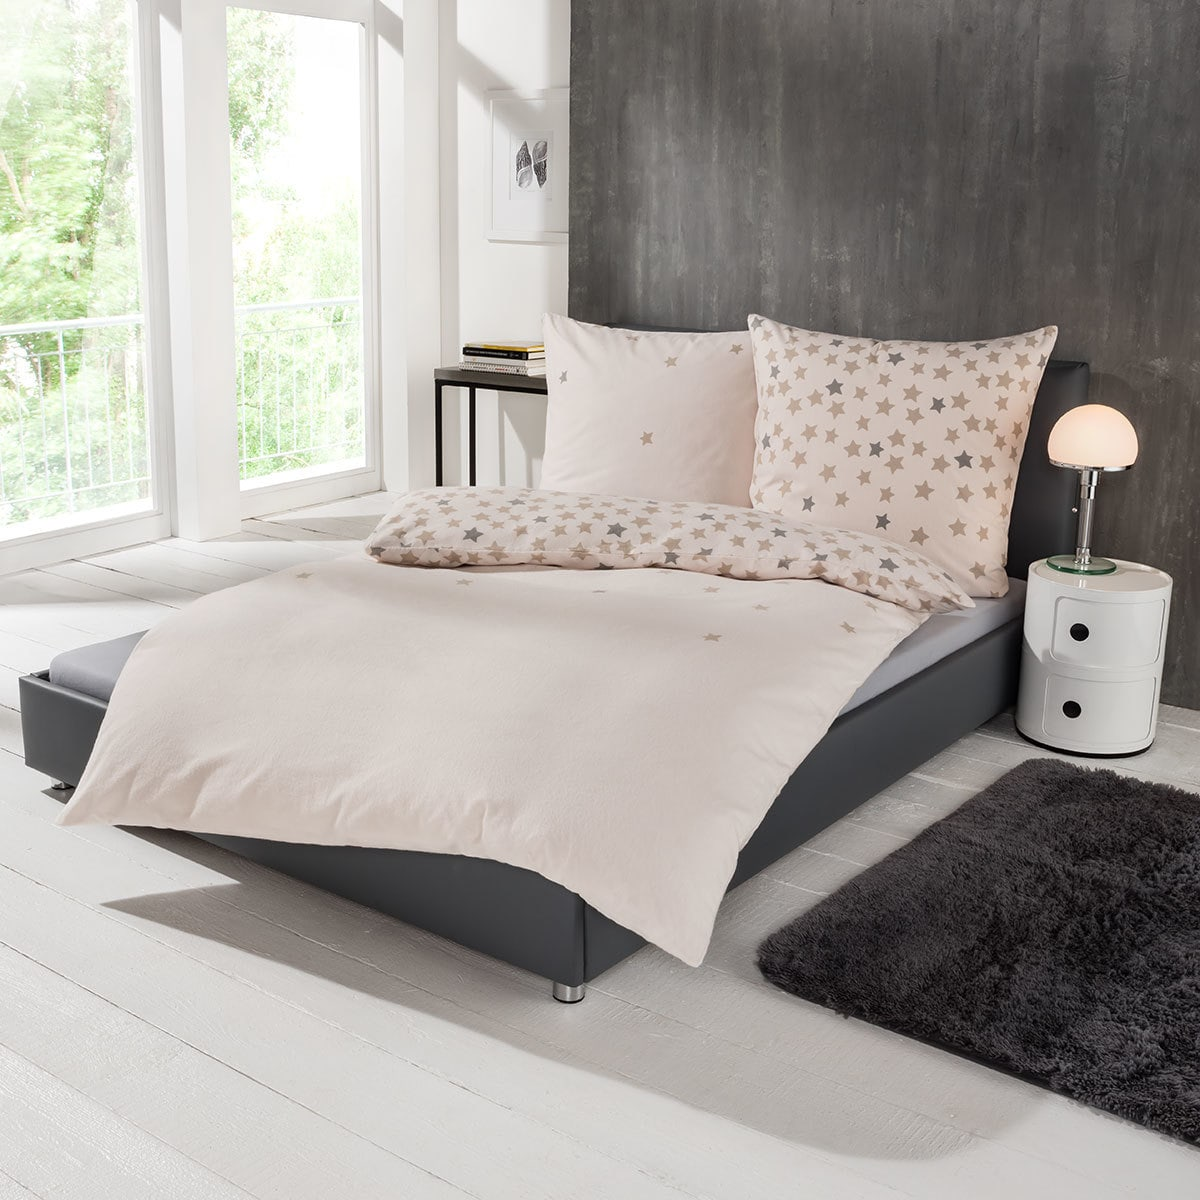 s oliver flanell bettw sche sterne g nstig online kaufen bei bettwaren shop. Black Bedroom Furniture Sets. Home Design Ideas